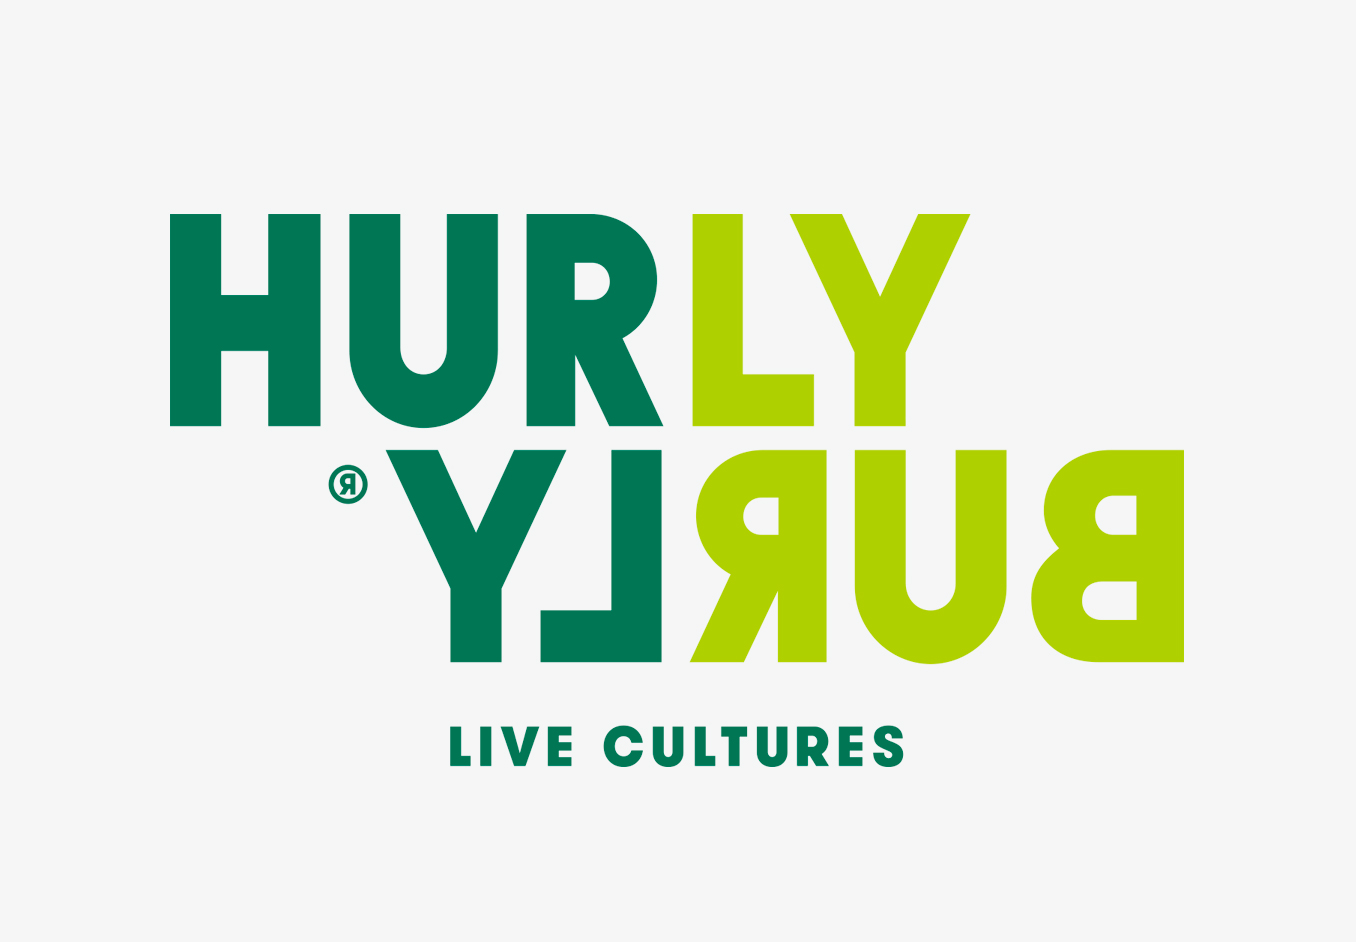 Logotype by London-based Midday Studio for Hurly Burly